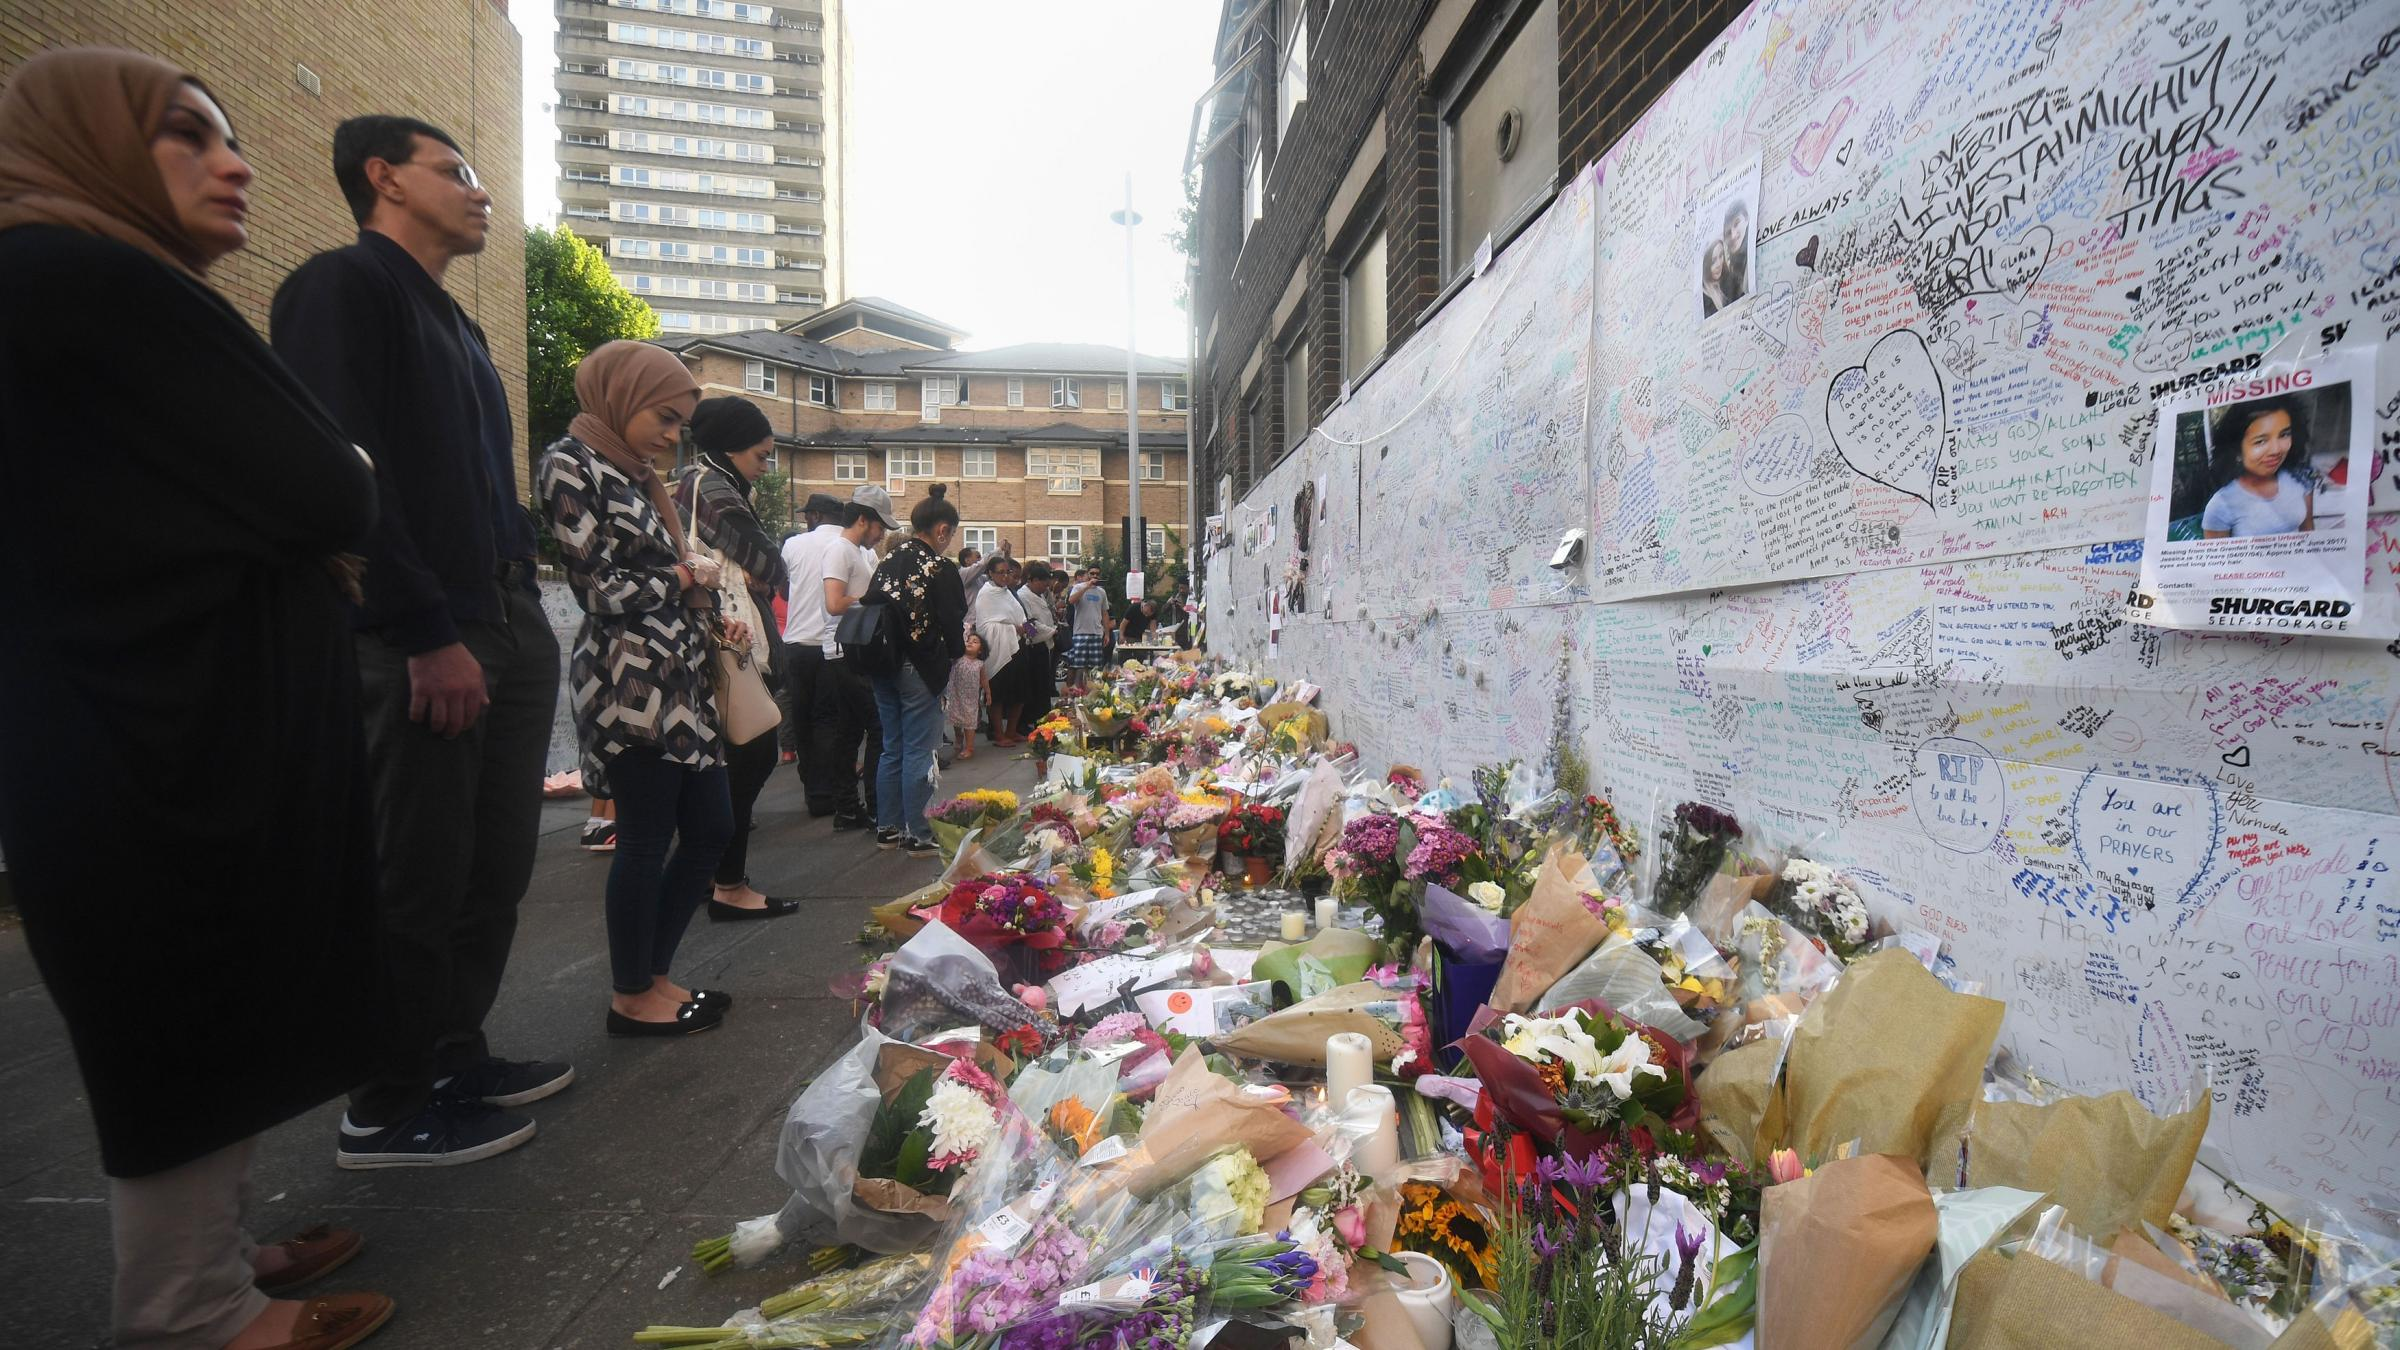 Minute's silence held for Grenfell Tower victims